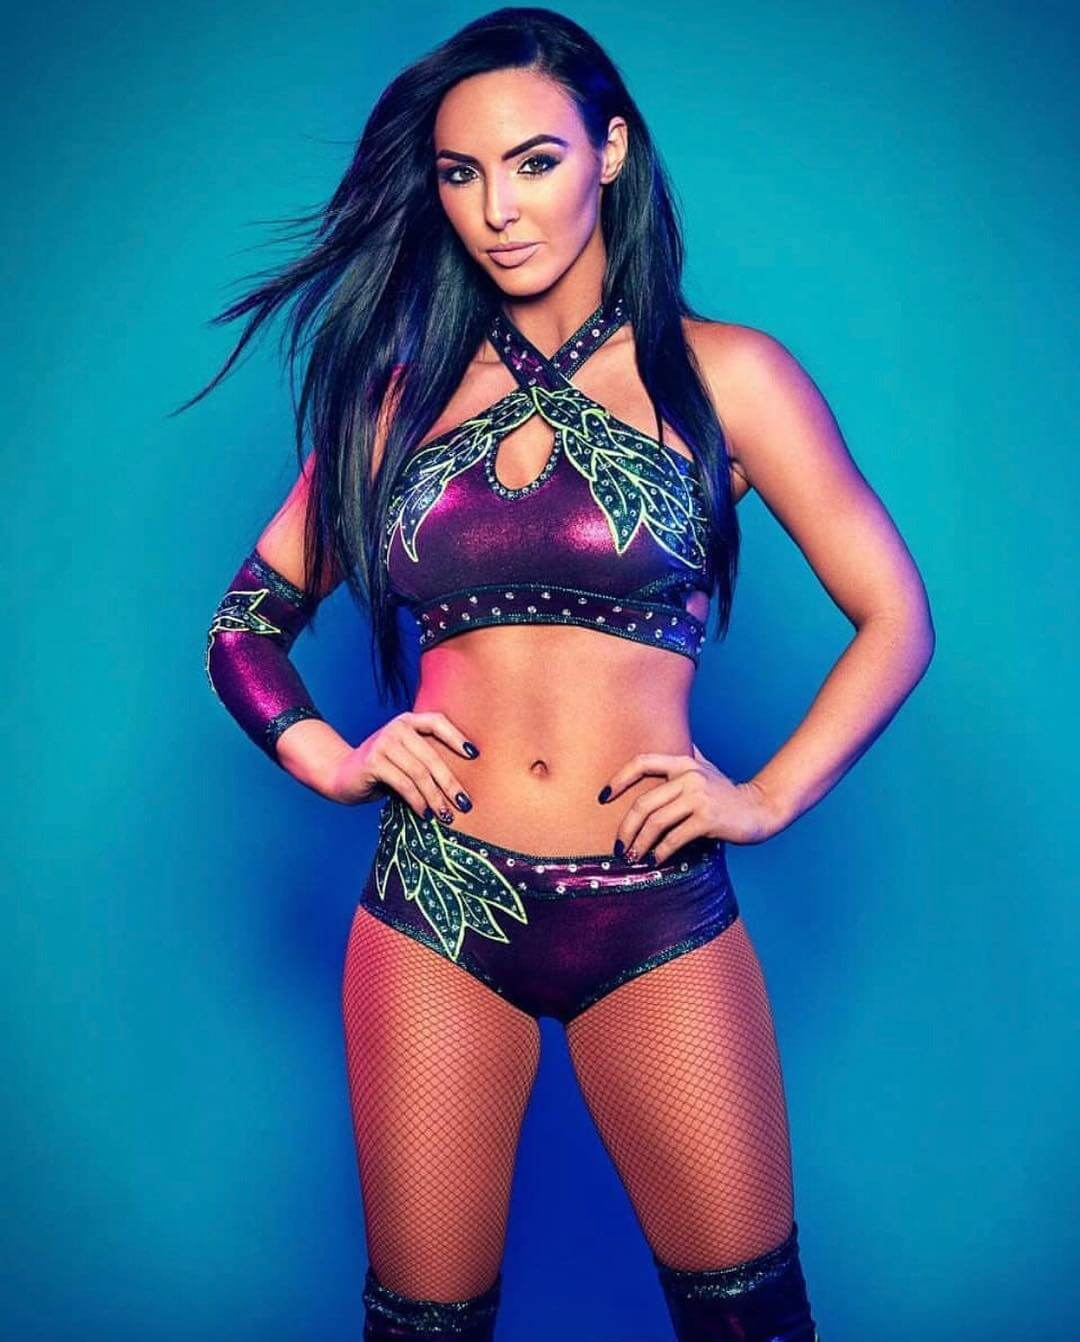 peyton royce sexy pictures